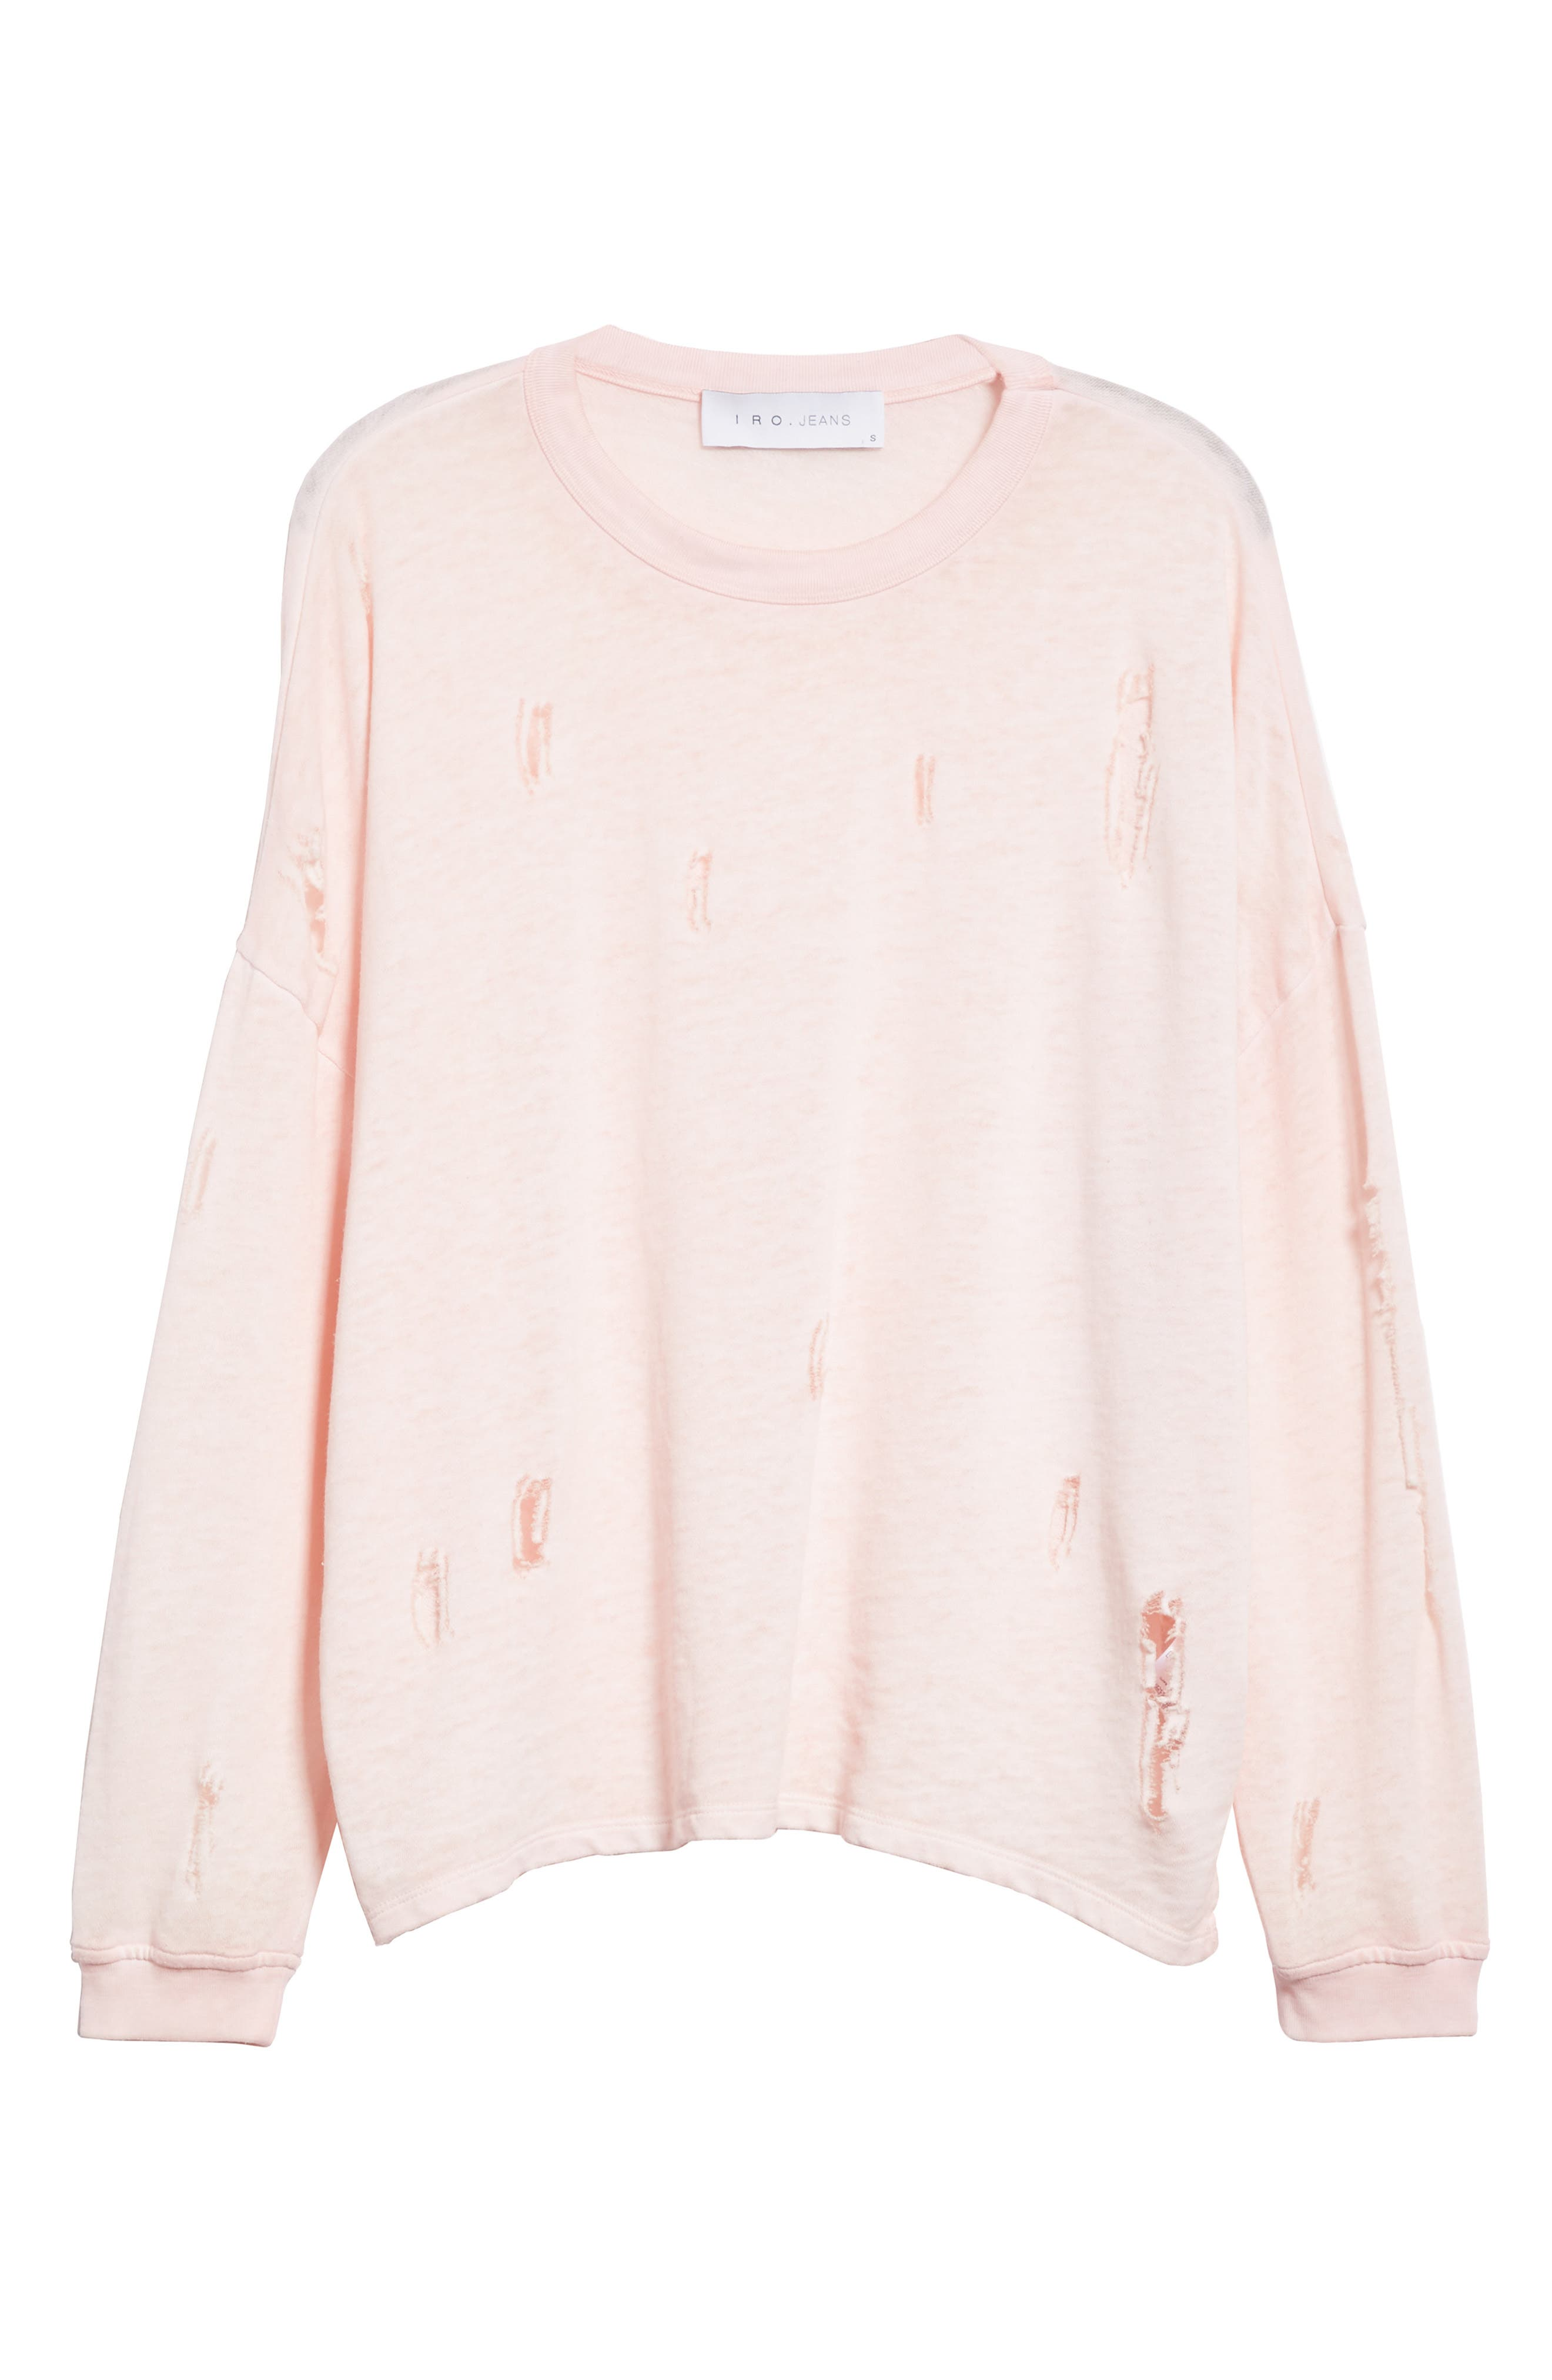 Lyzza Distressed Sweatshirt,                             Alternate thumbnail 6, color,                             680